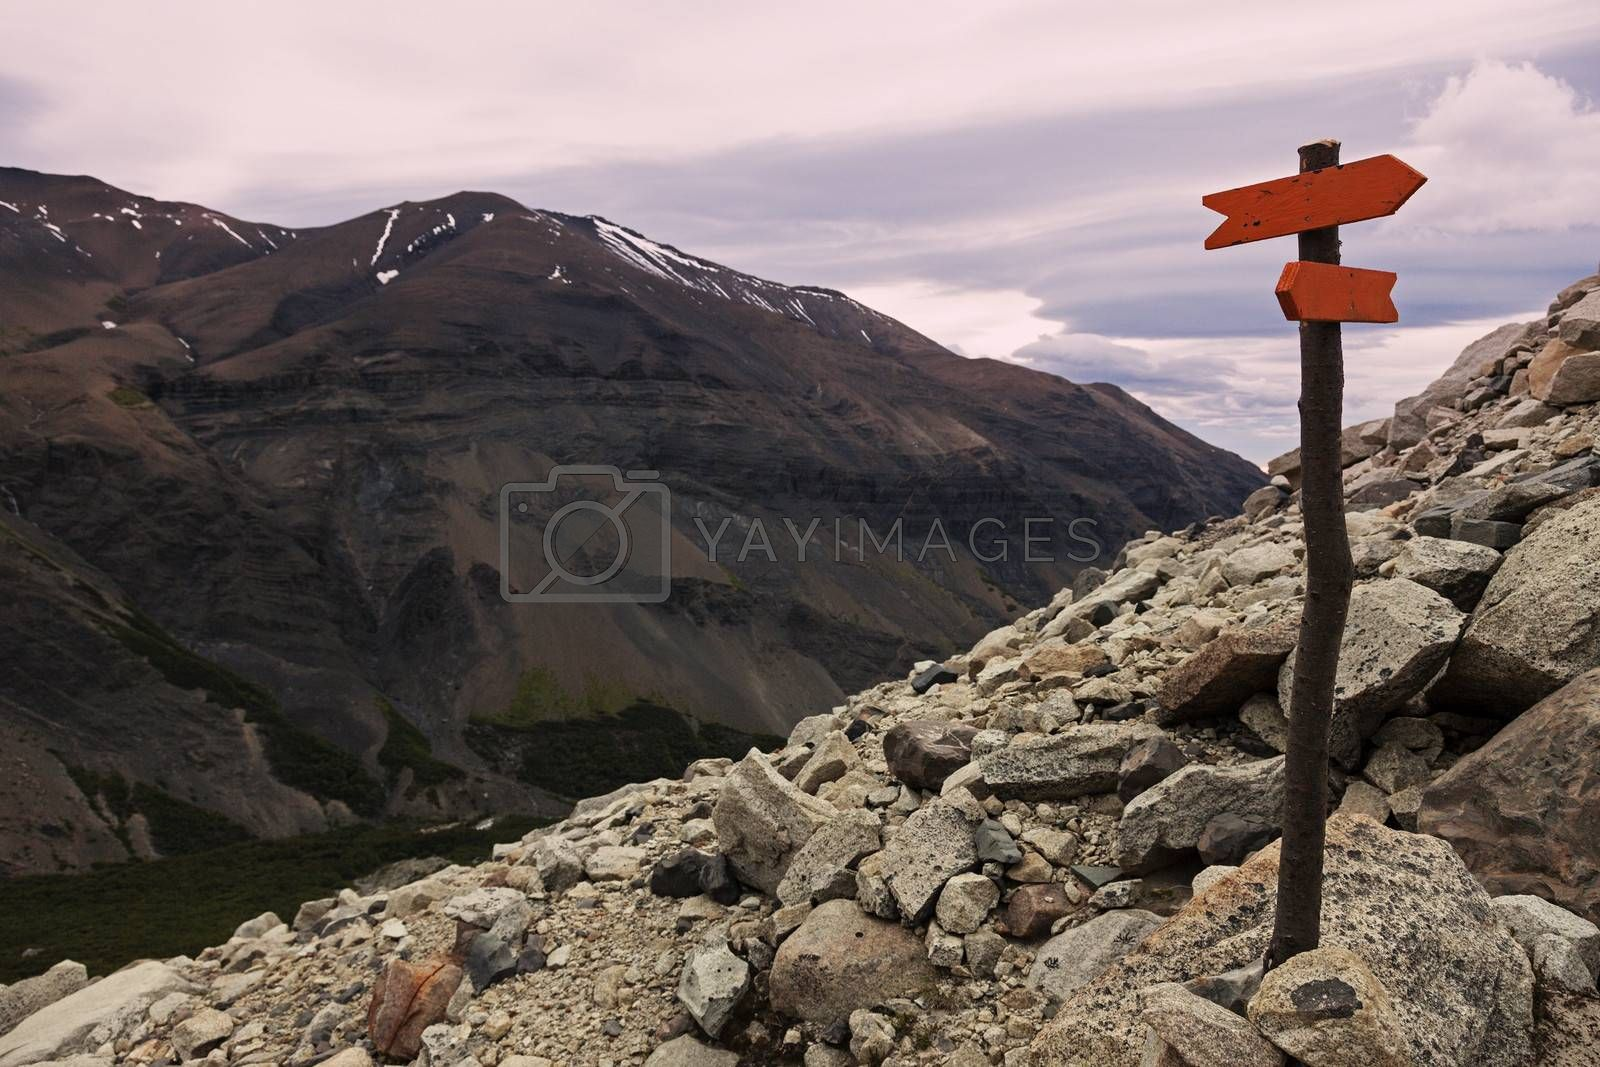 Royalty free image of Sign in Torres del Paine by benkrut